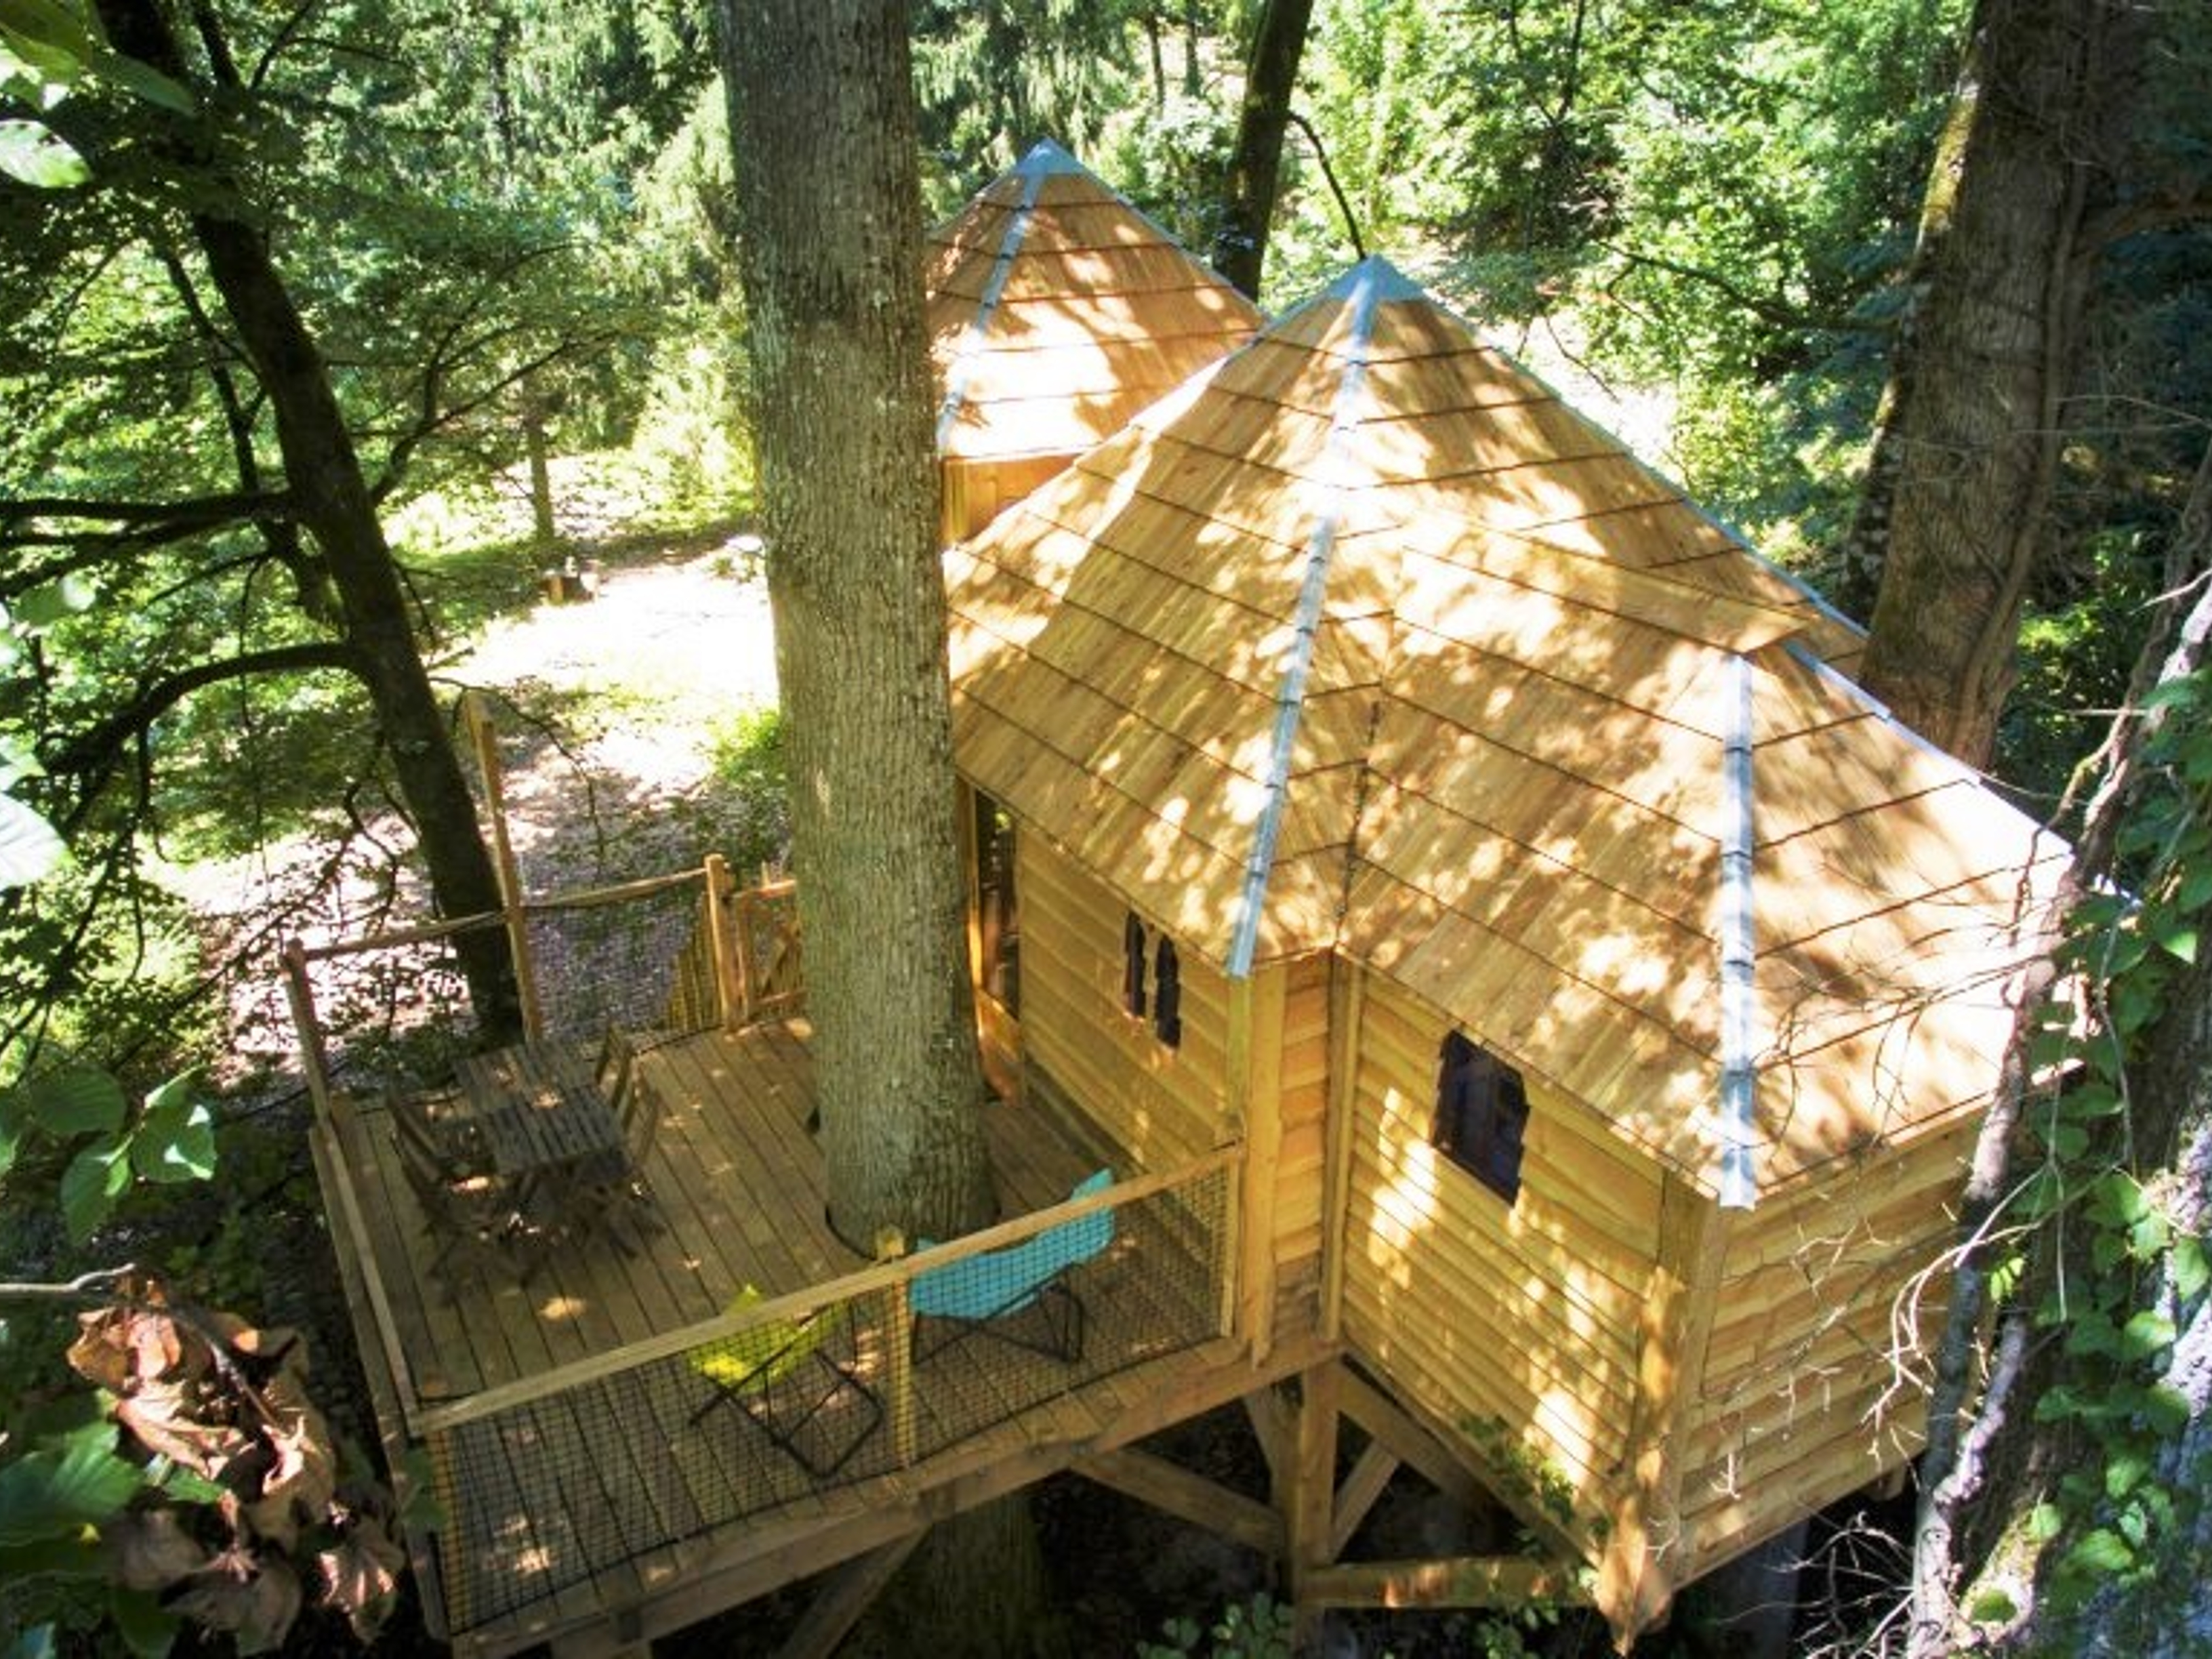 Knights' Treehouse (3 to 5 people)